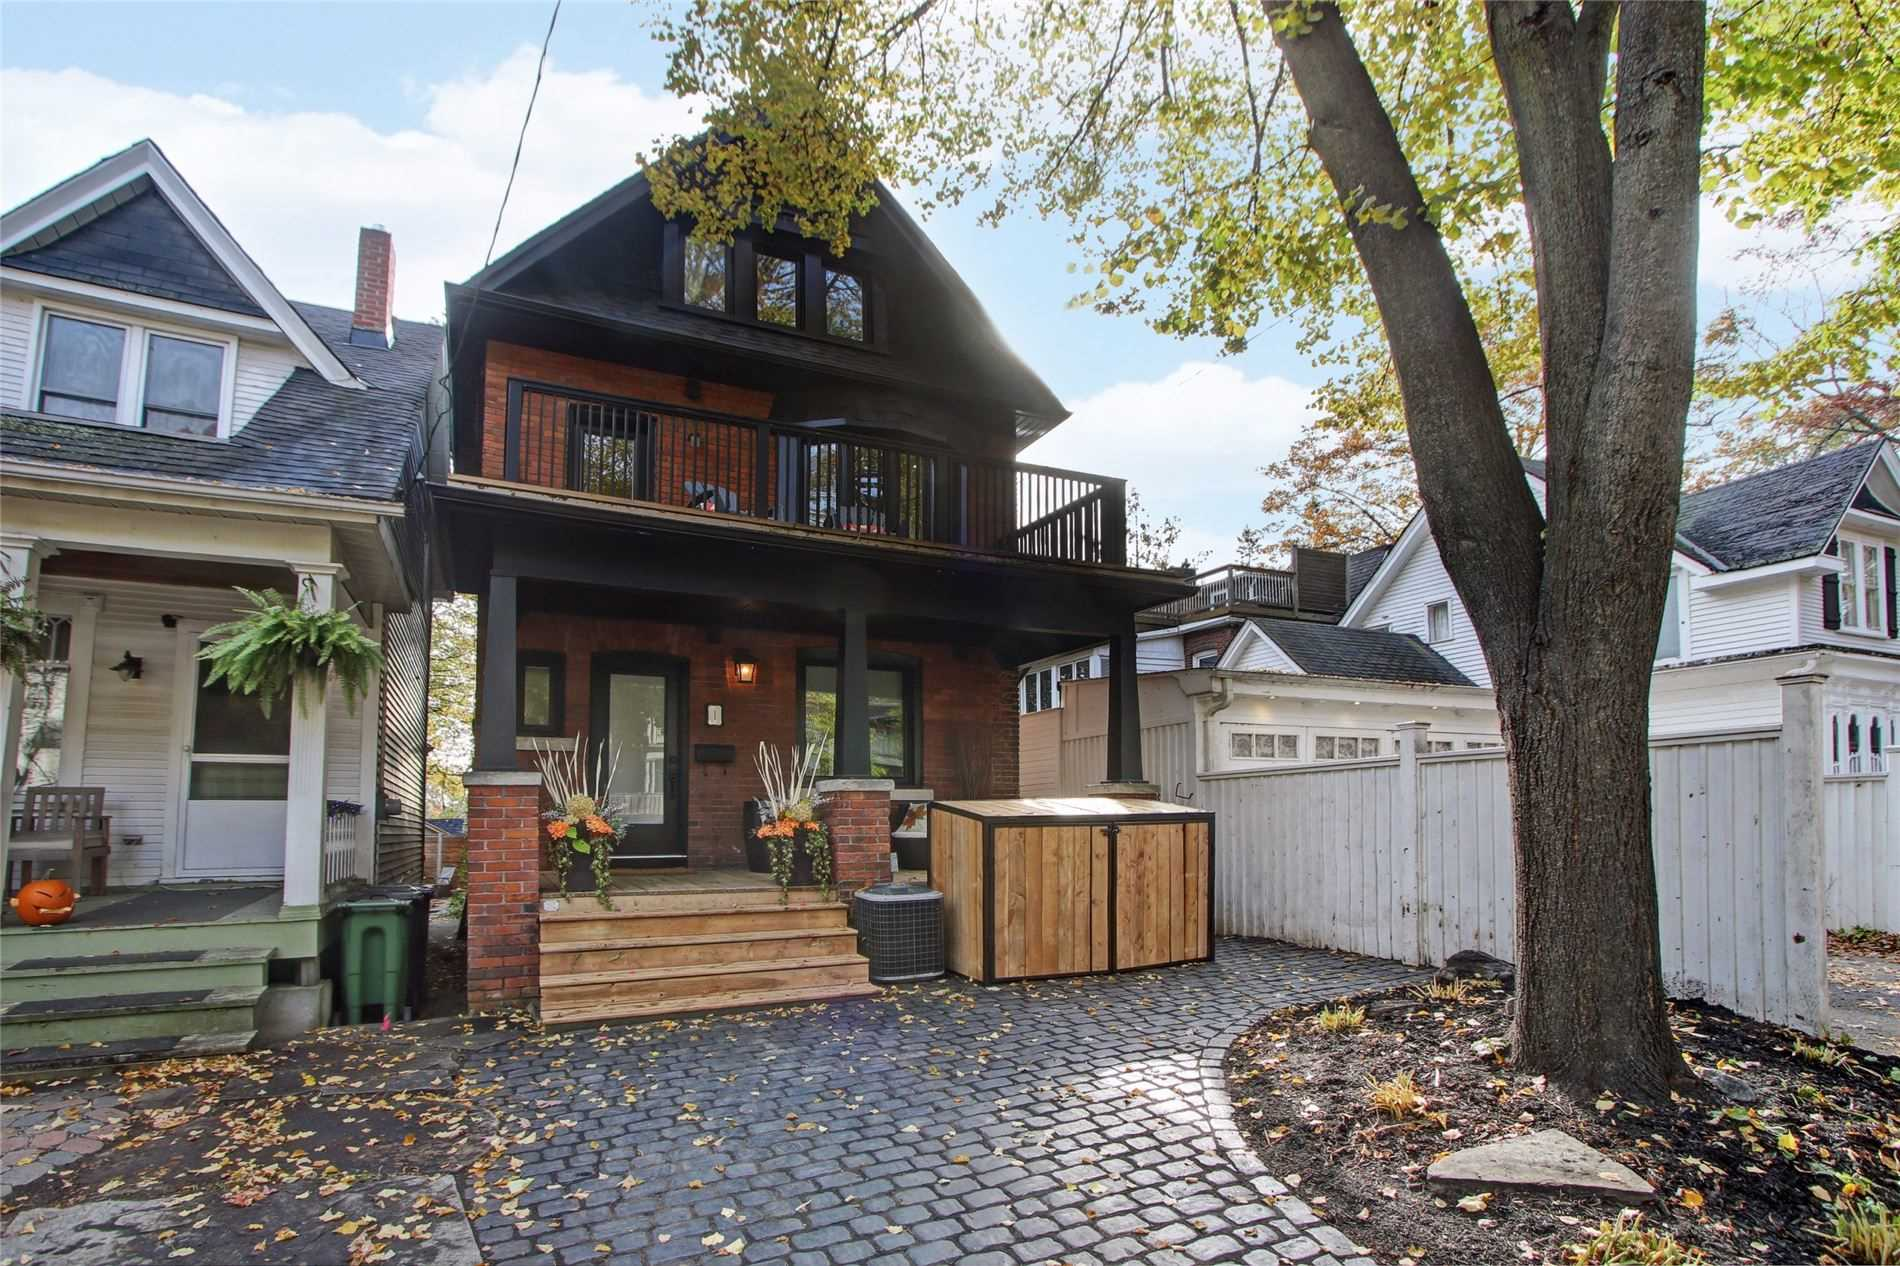 For Sale: 1 Balmy Avenue East, Toronto, ON   4 Bed, 3 Bath House for $1839900.00. See 20 photos!